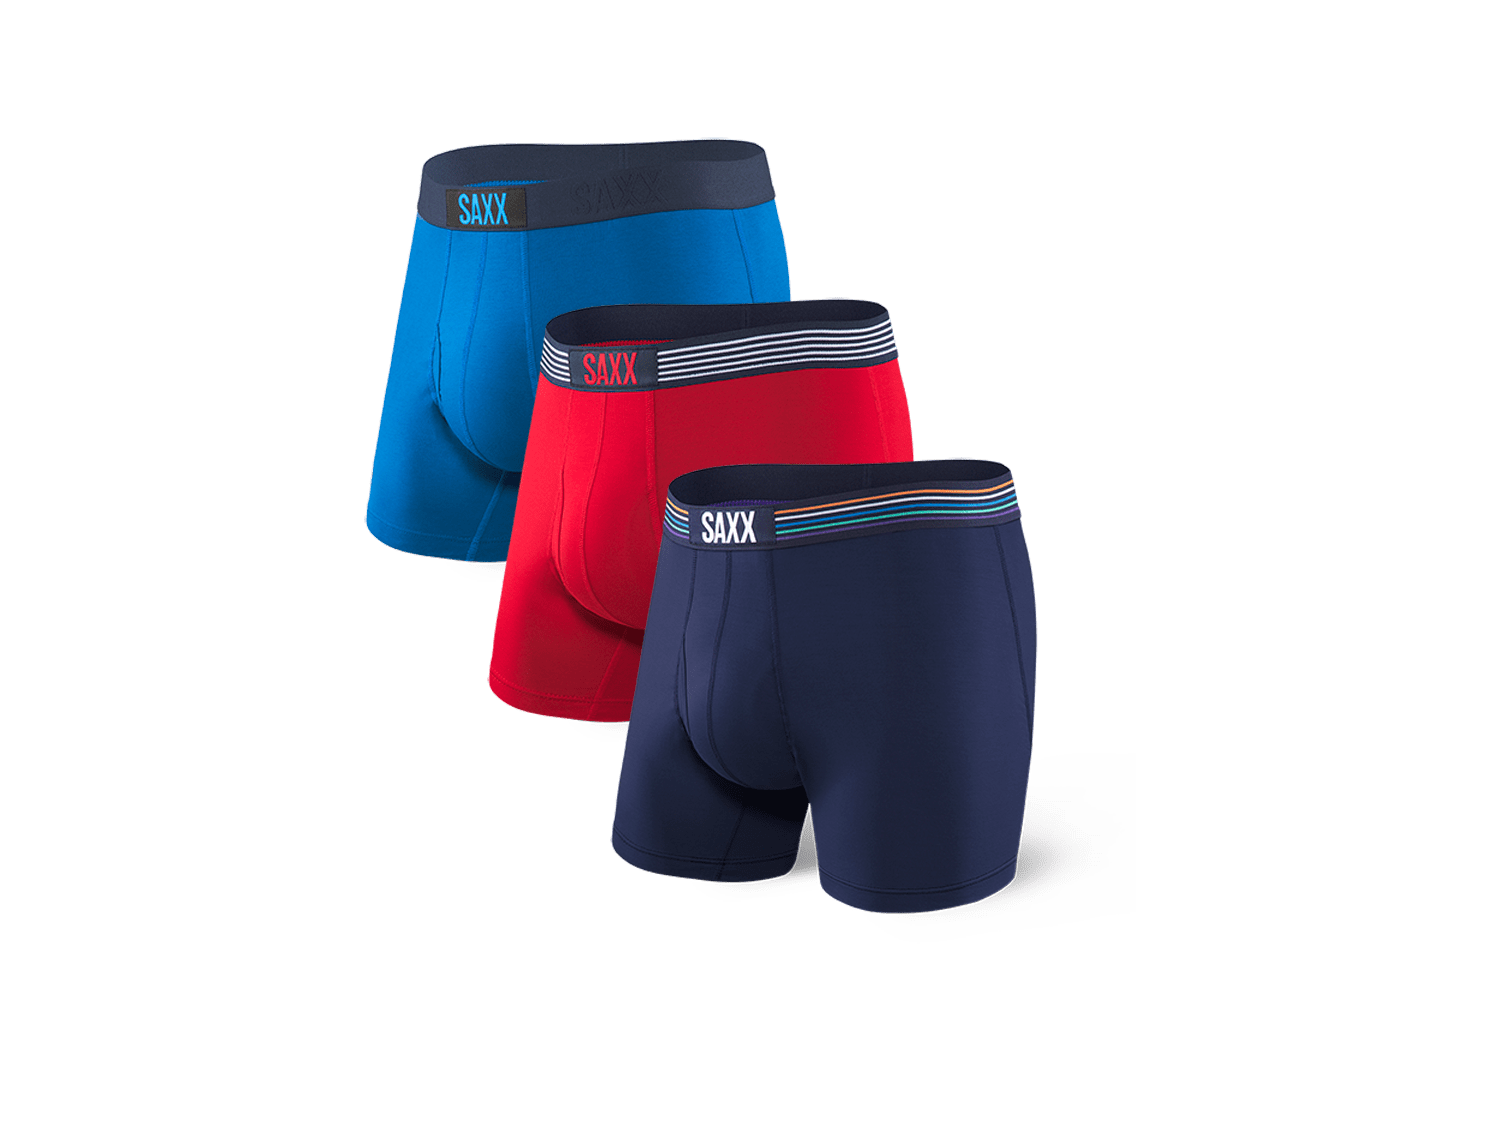 SAXX Ultra 3-Pack Boxer Brief